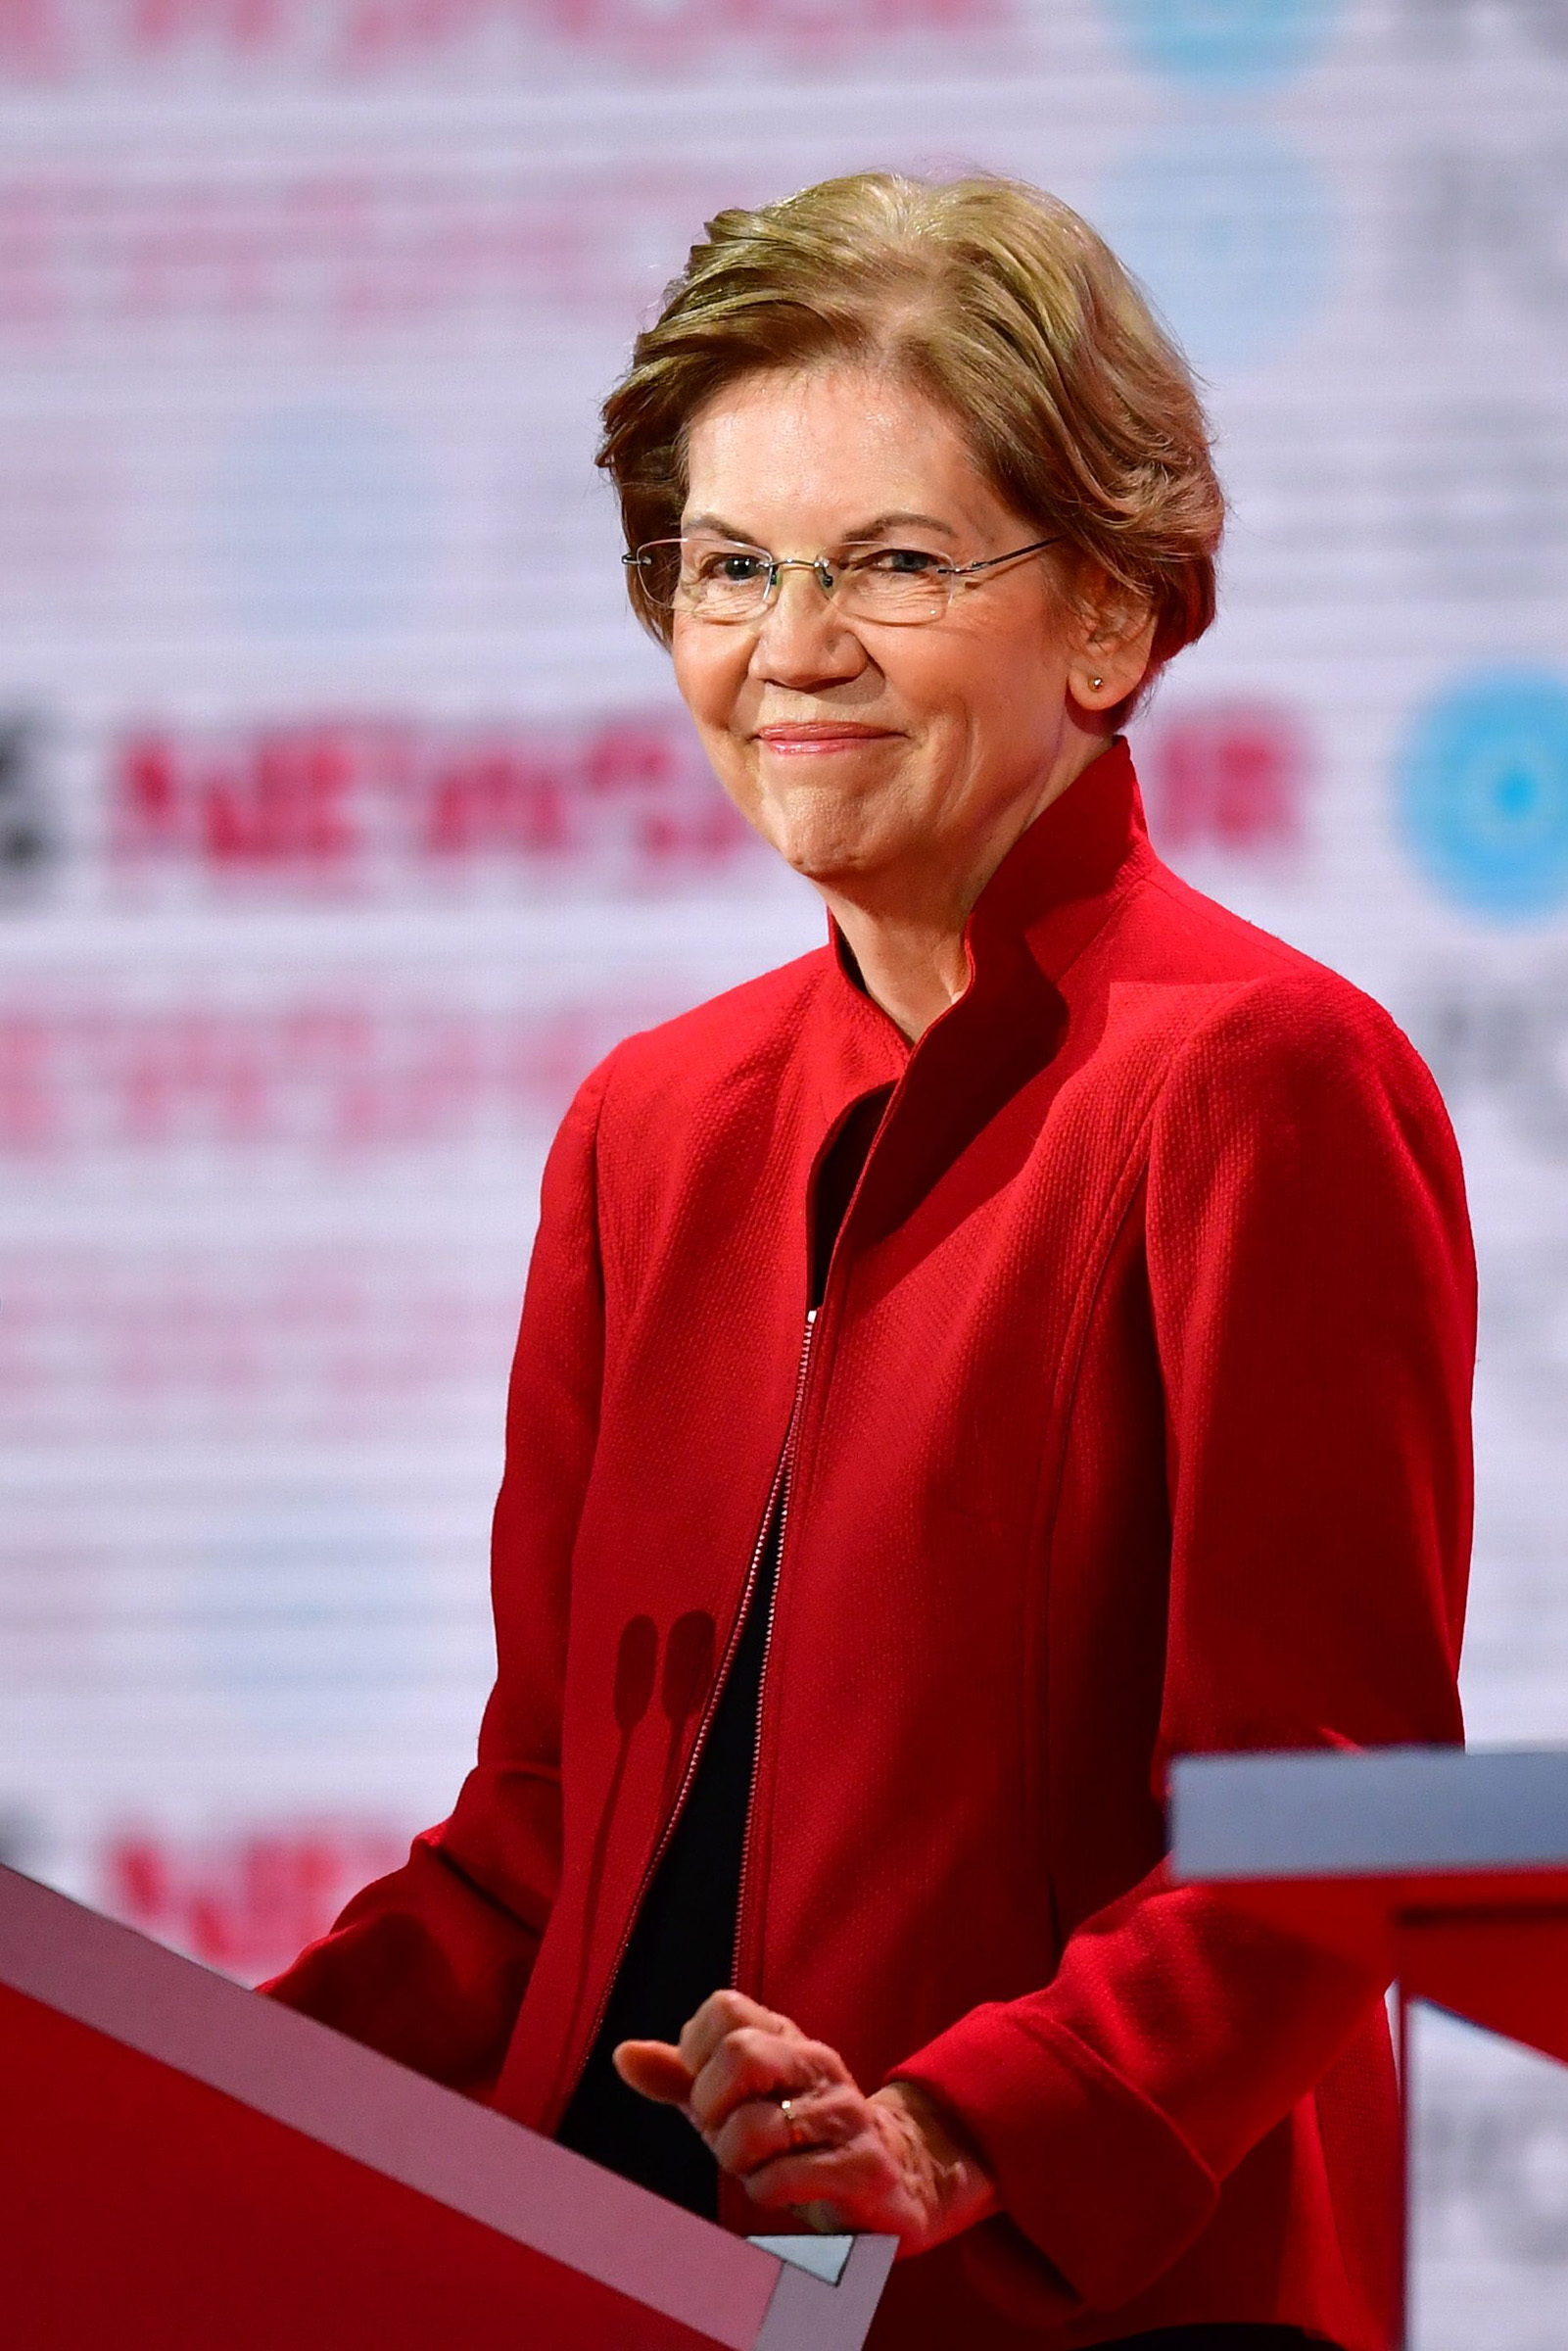 Democratic presidential hopeful Massachusetts Senator Elizabeth Warren smiles ahead of the sixth Democratic primary debate of the 2020 presidential campaign season in Los Angeles, California on Dec. 19, 2019.